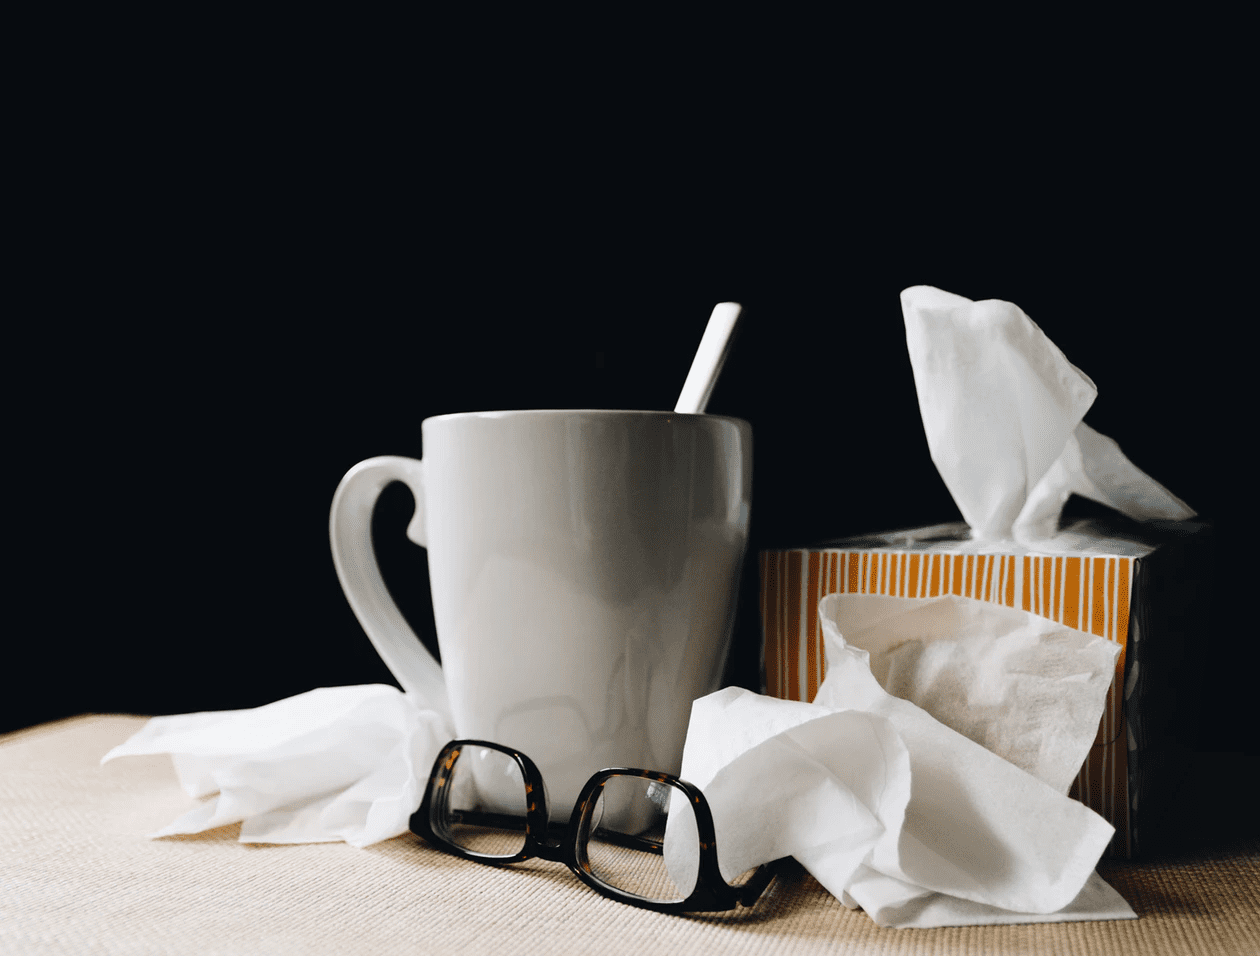 Mug, glasses, and tissues on a table